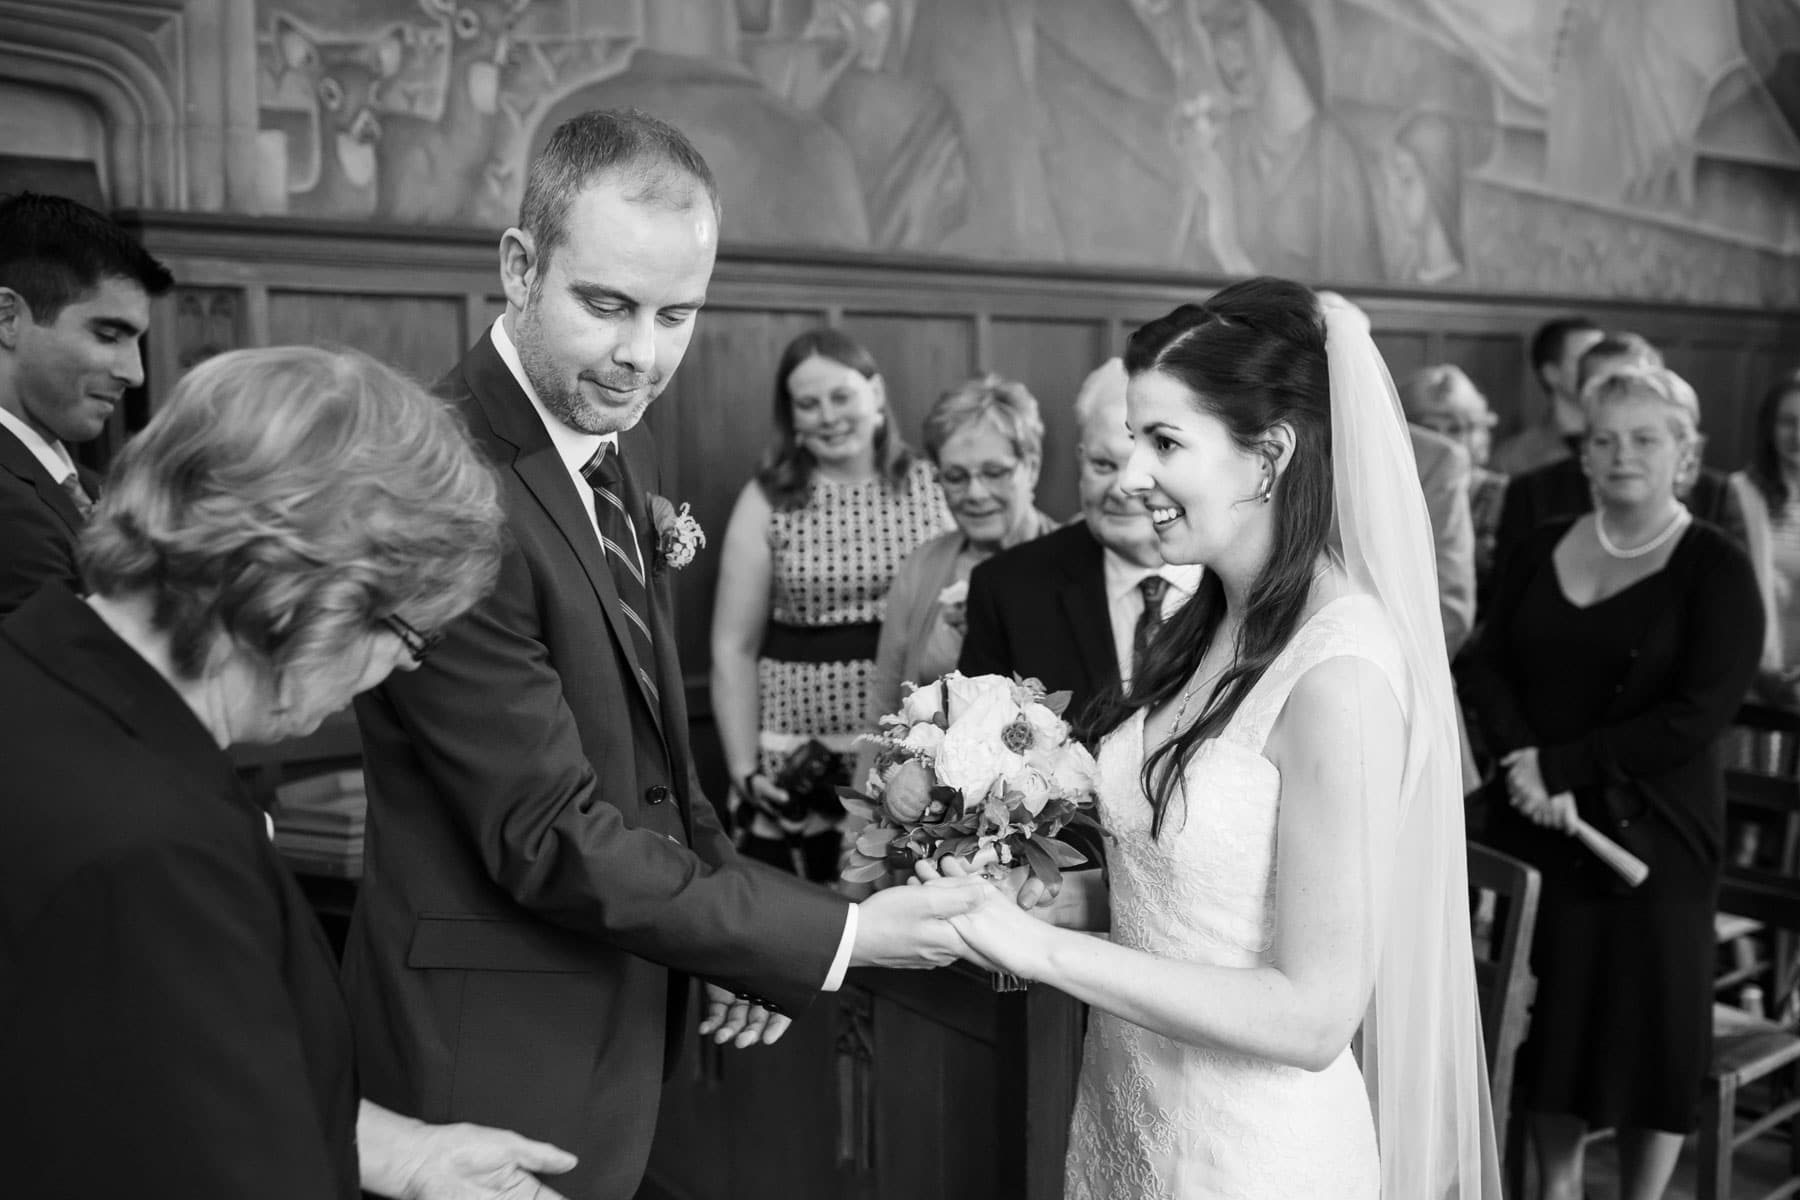 The bride and groom hold hands while smiling at the female wedding officiant and surrounded by guests in this Hart House wedding photo.